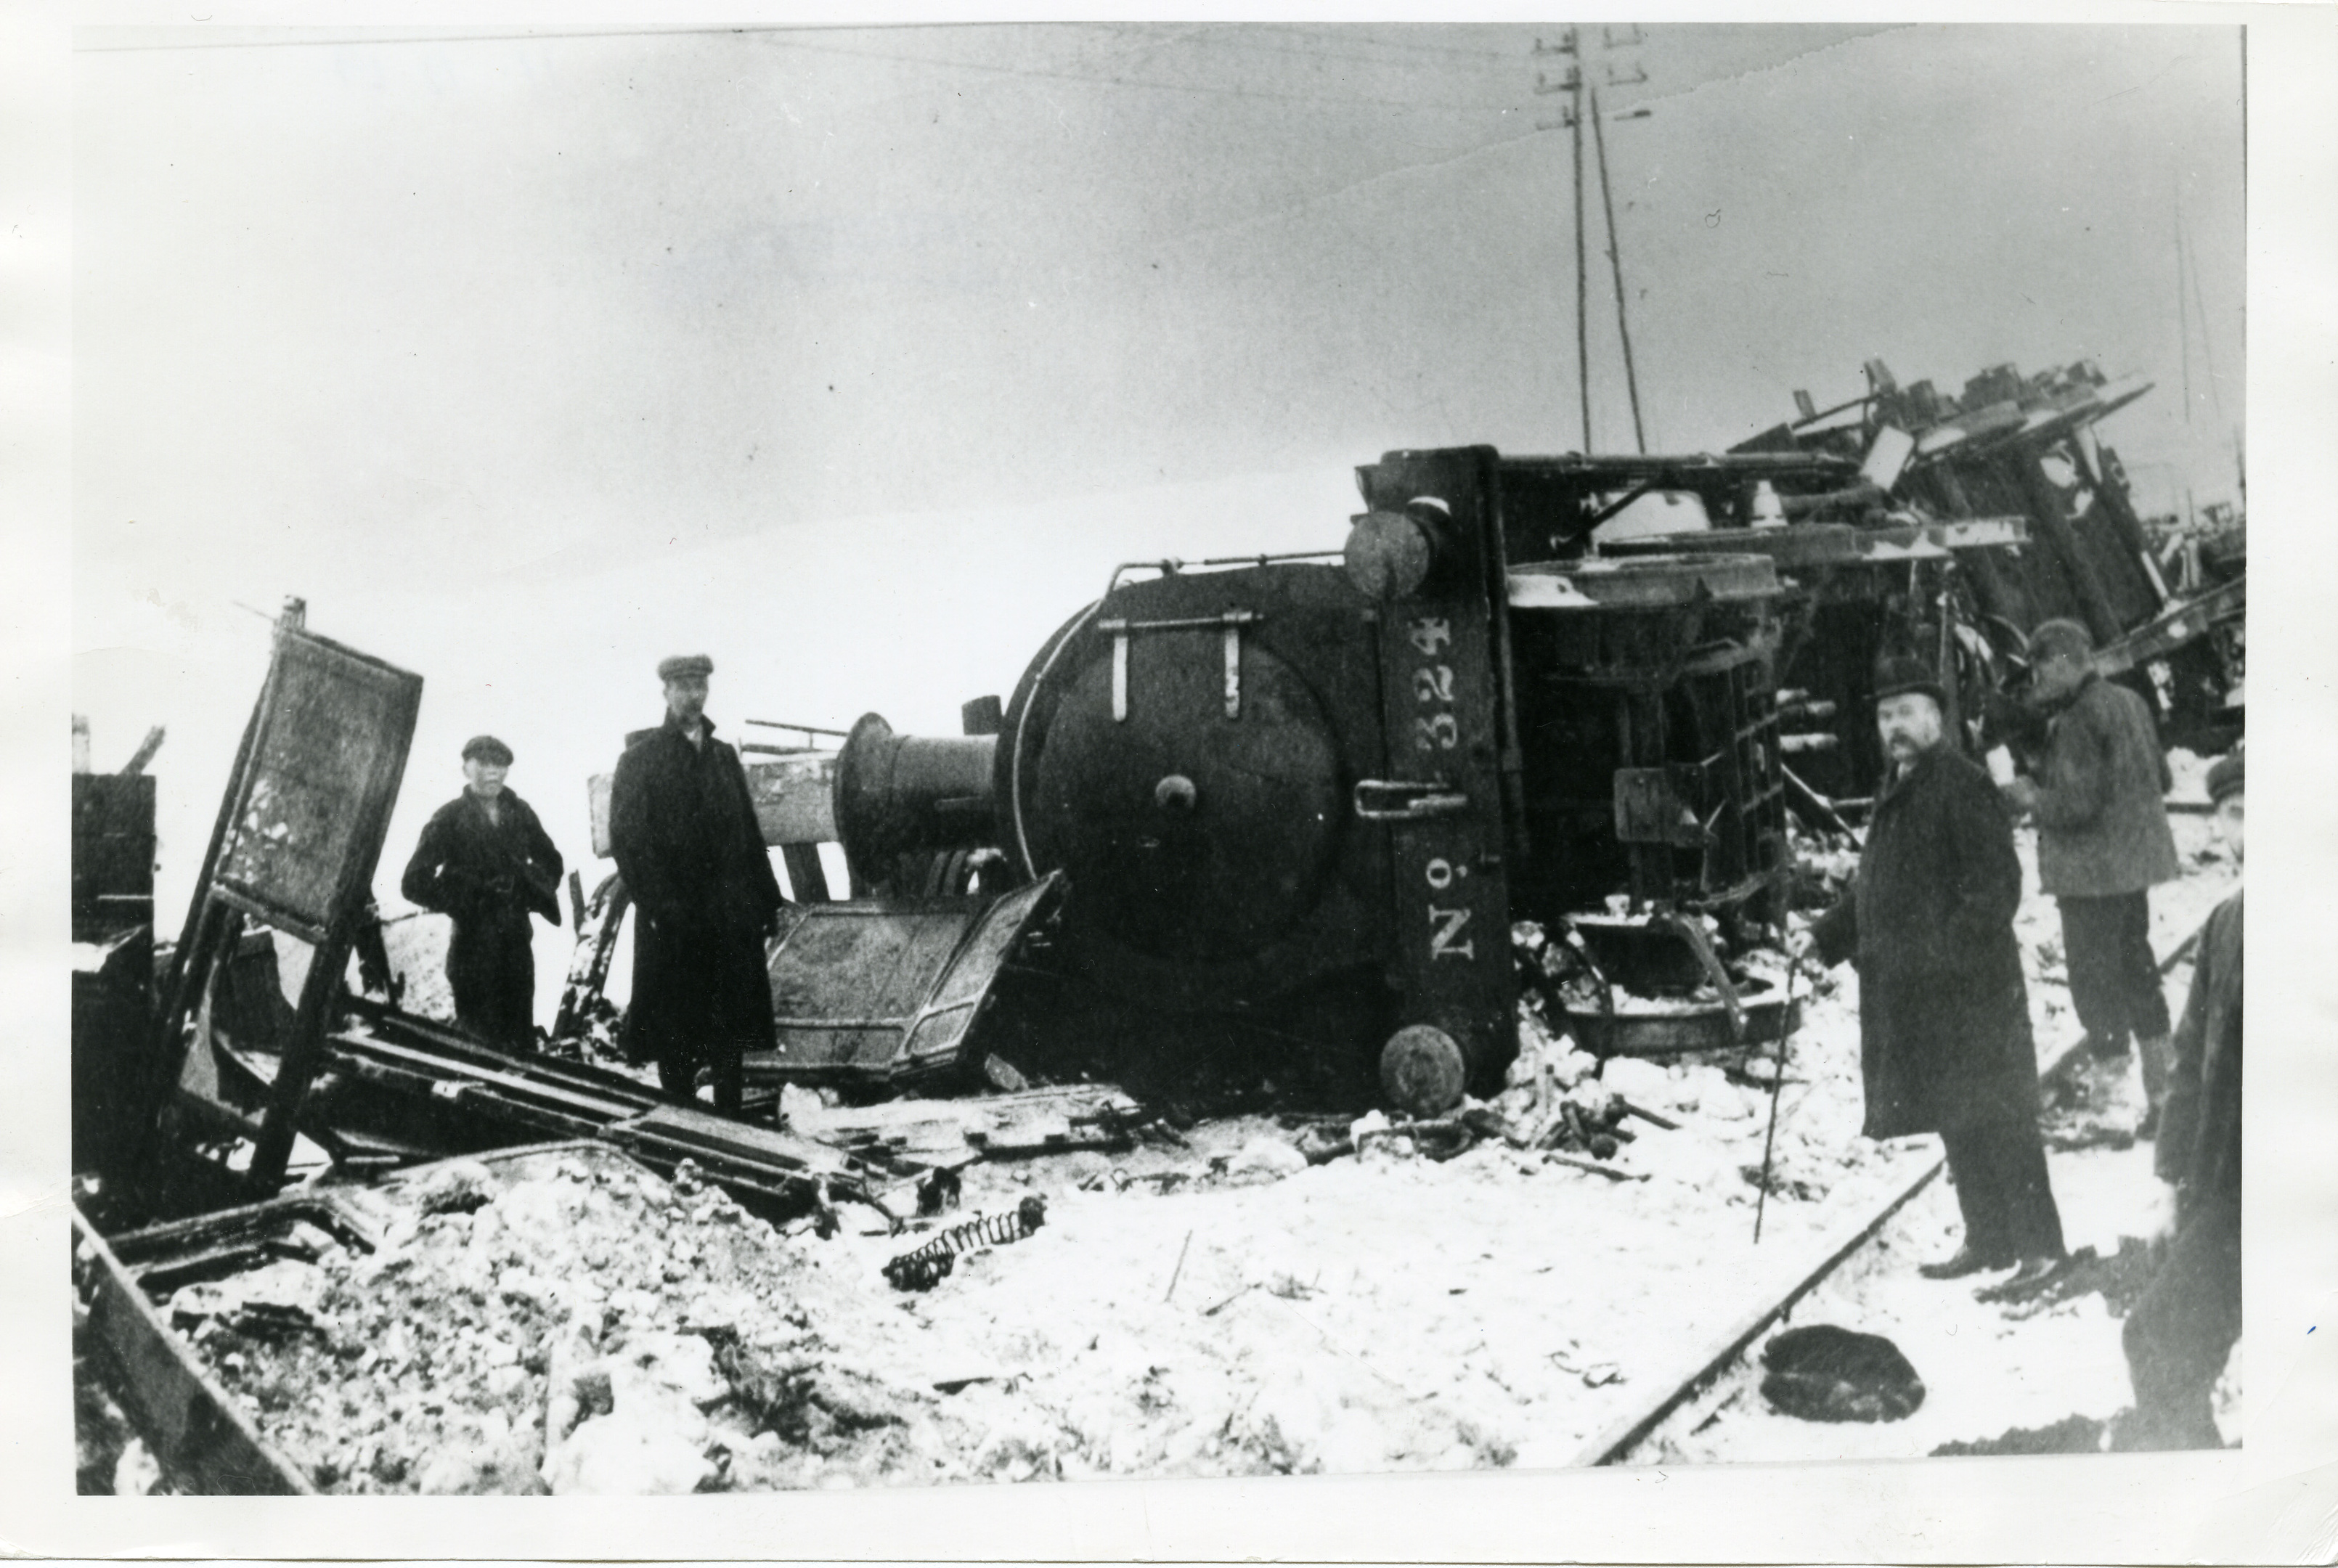 The aftermath of the train crash at Elliot in 1906